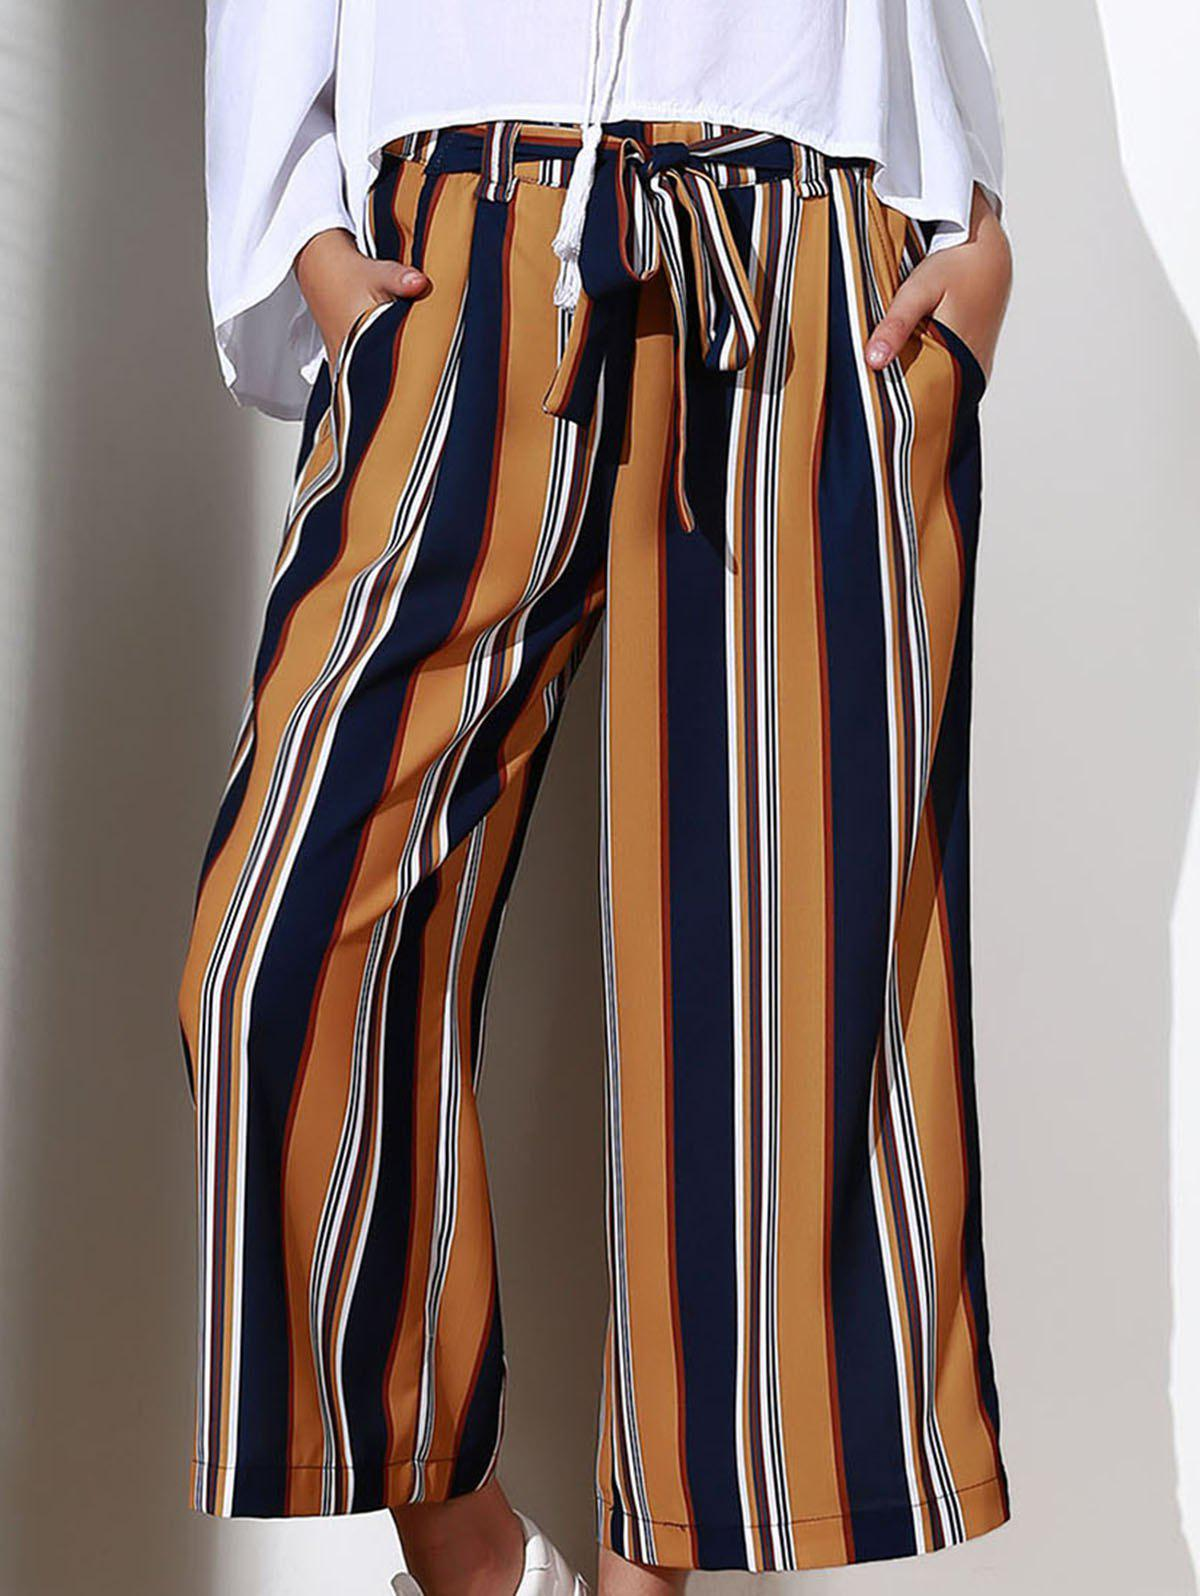 Chic High-Waisted Pocket Design Striped Women's Cropped Pants - GINGER S